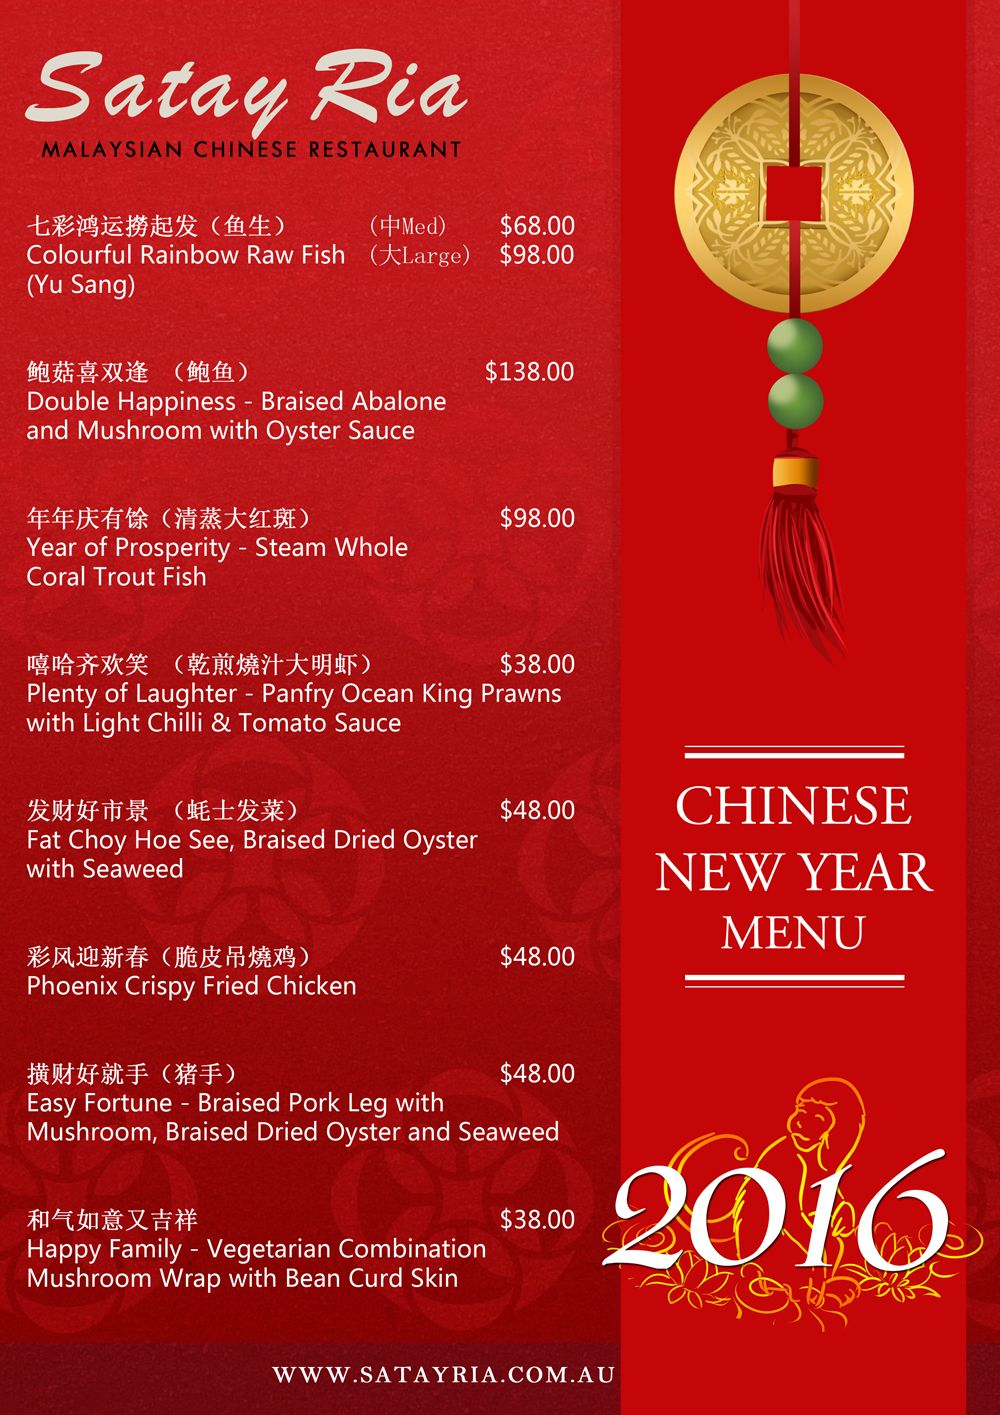 Pin by 杨杨 on chinese new year New year menu, Chinese